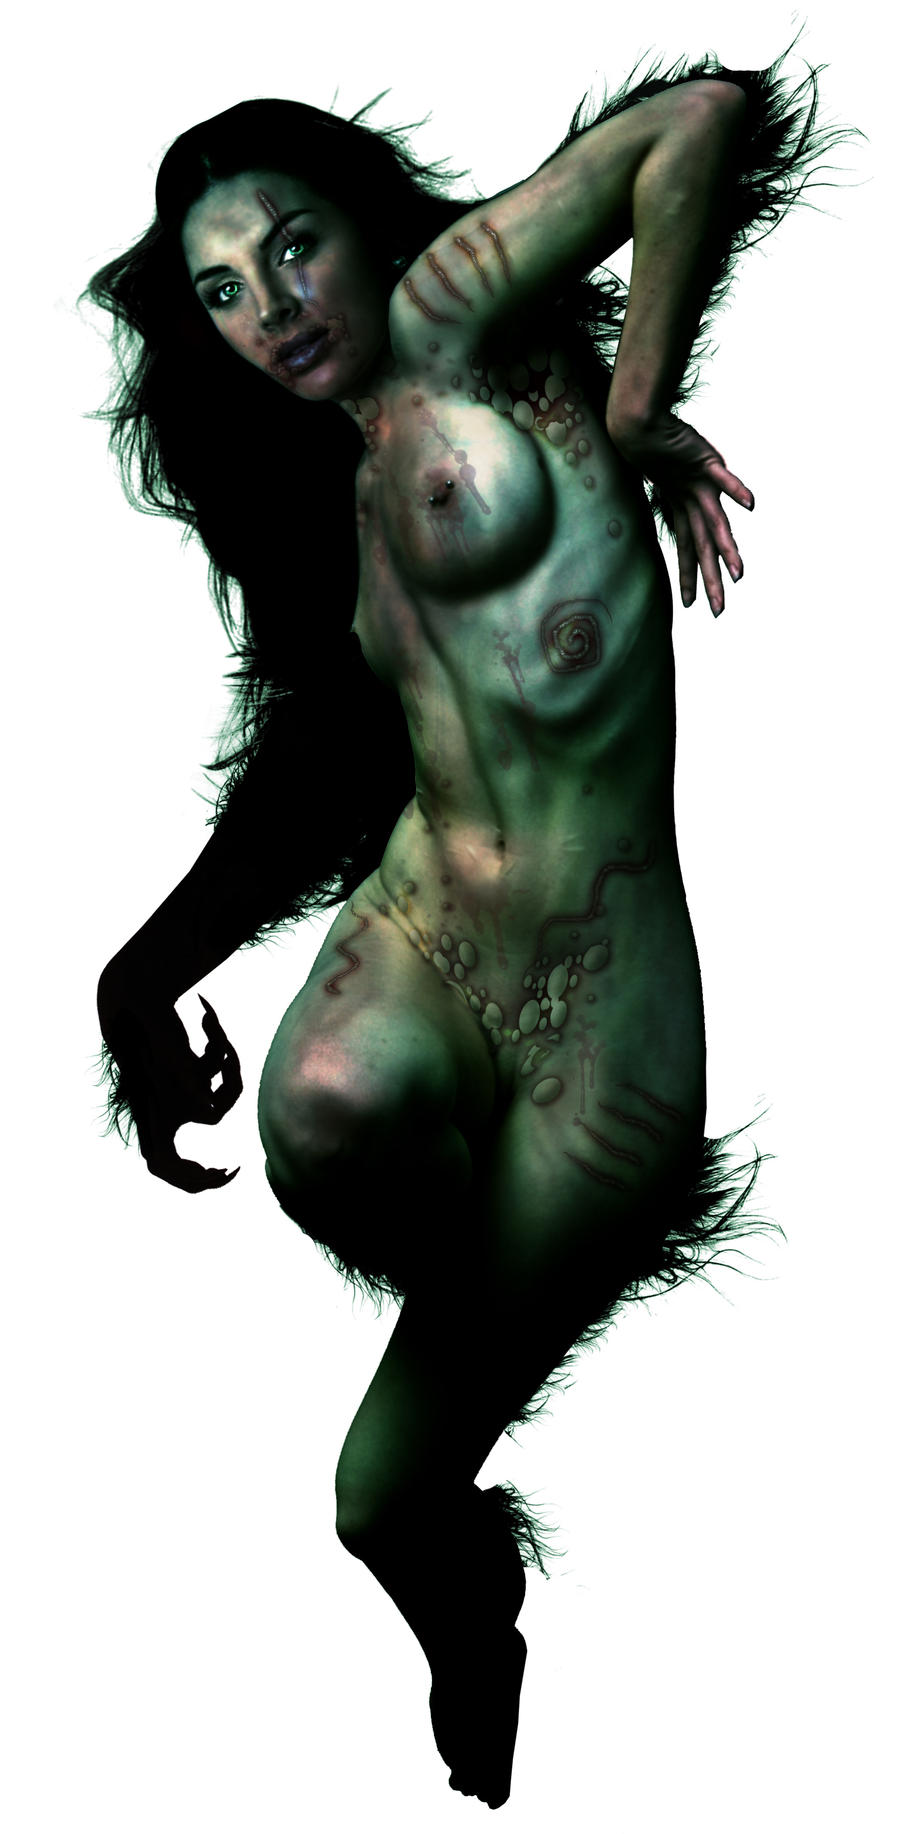 http://fc02.deviantart.net/fs50/i/2009/334/8/e/Sophia___Keeper_of_the_Swarm_by_Roma_Naim.jpg